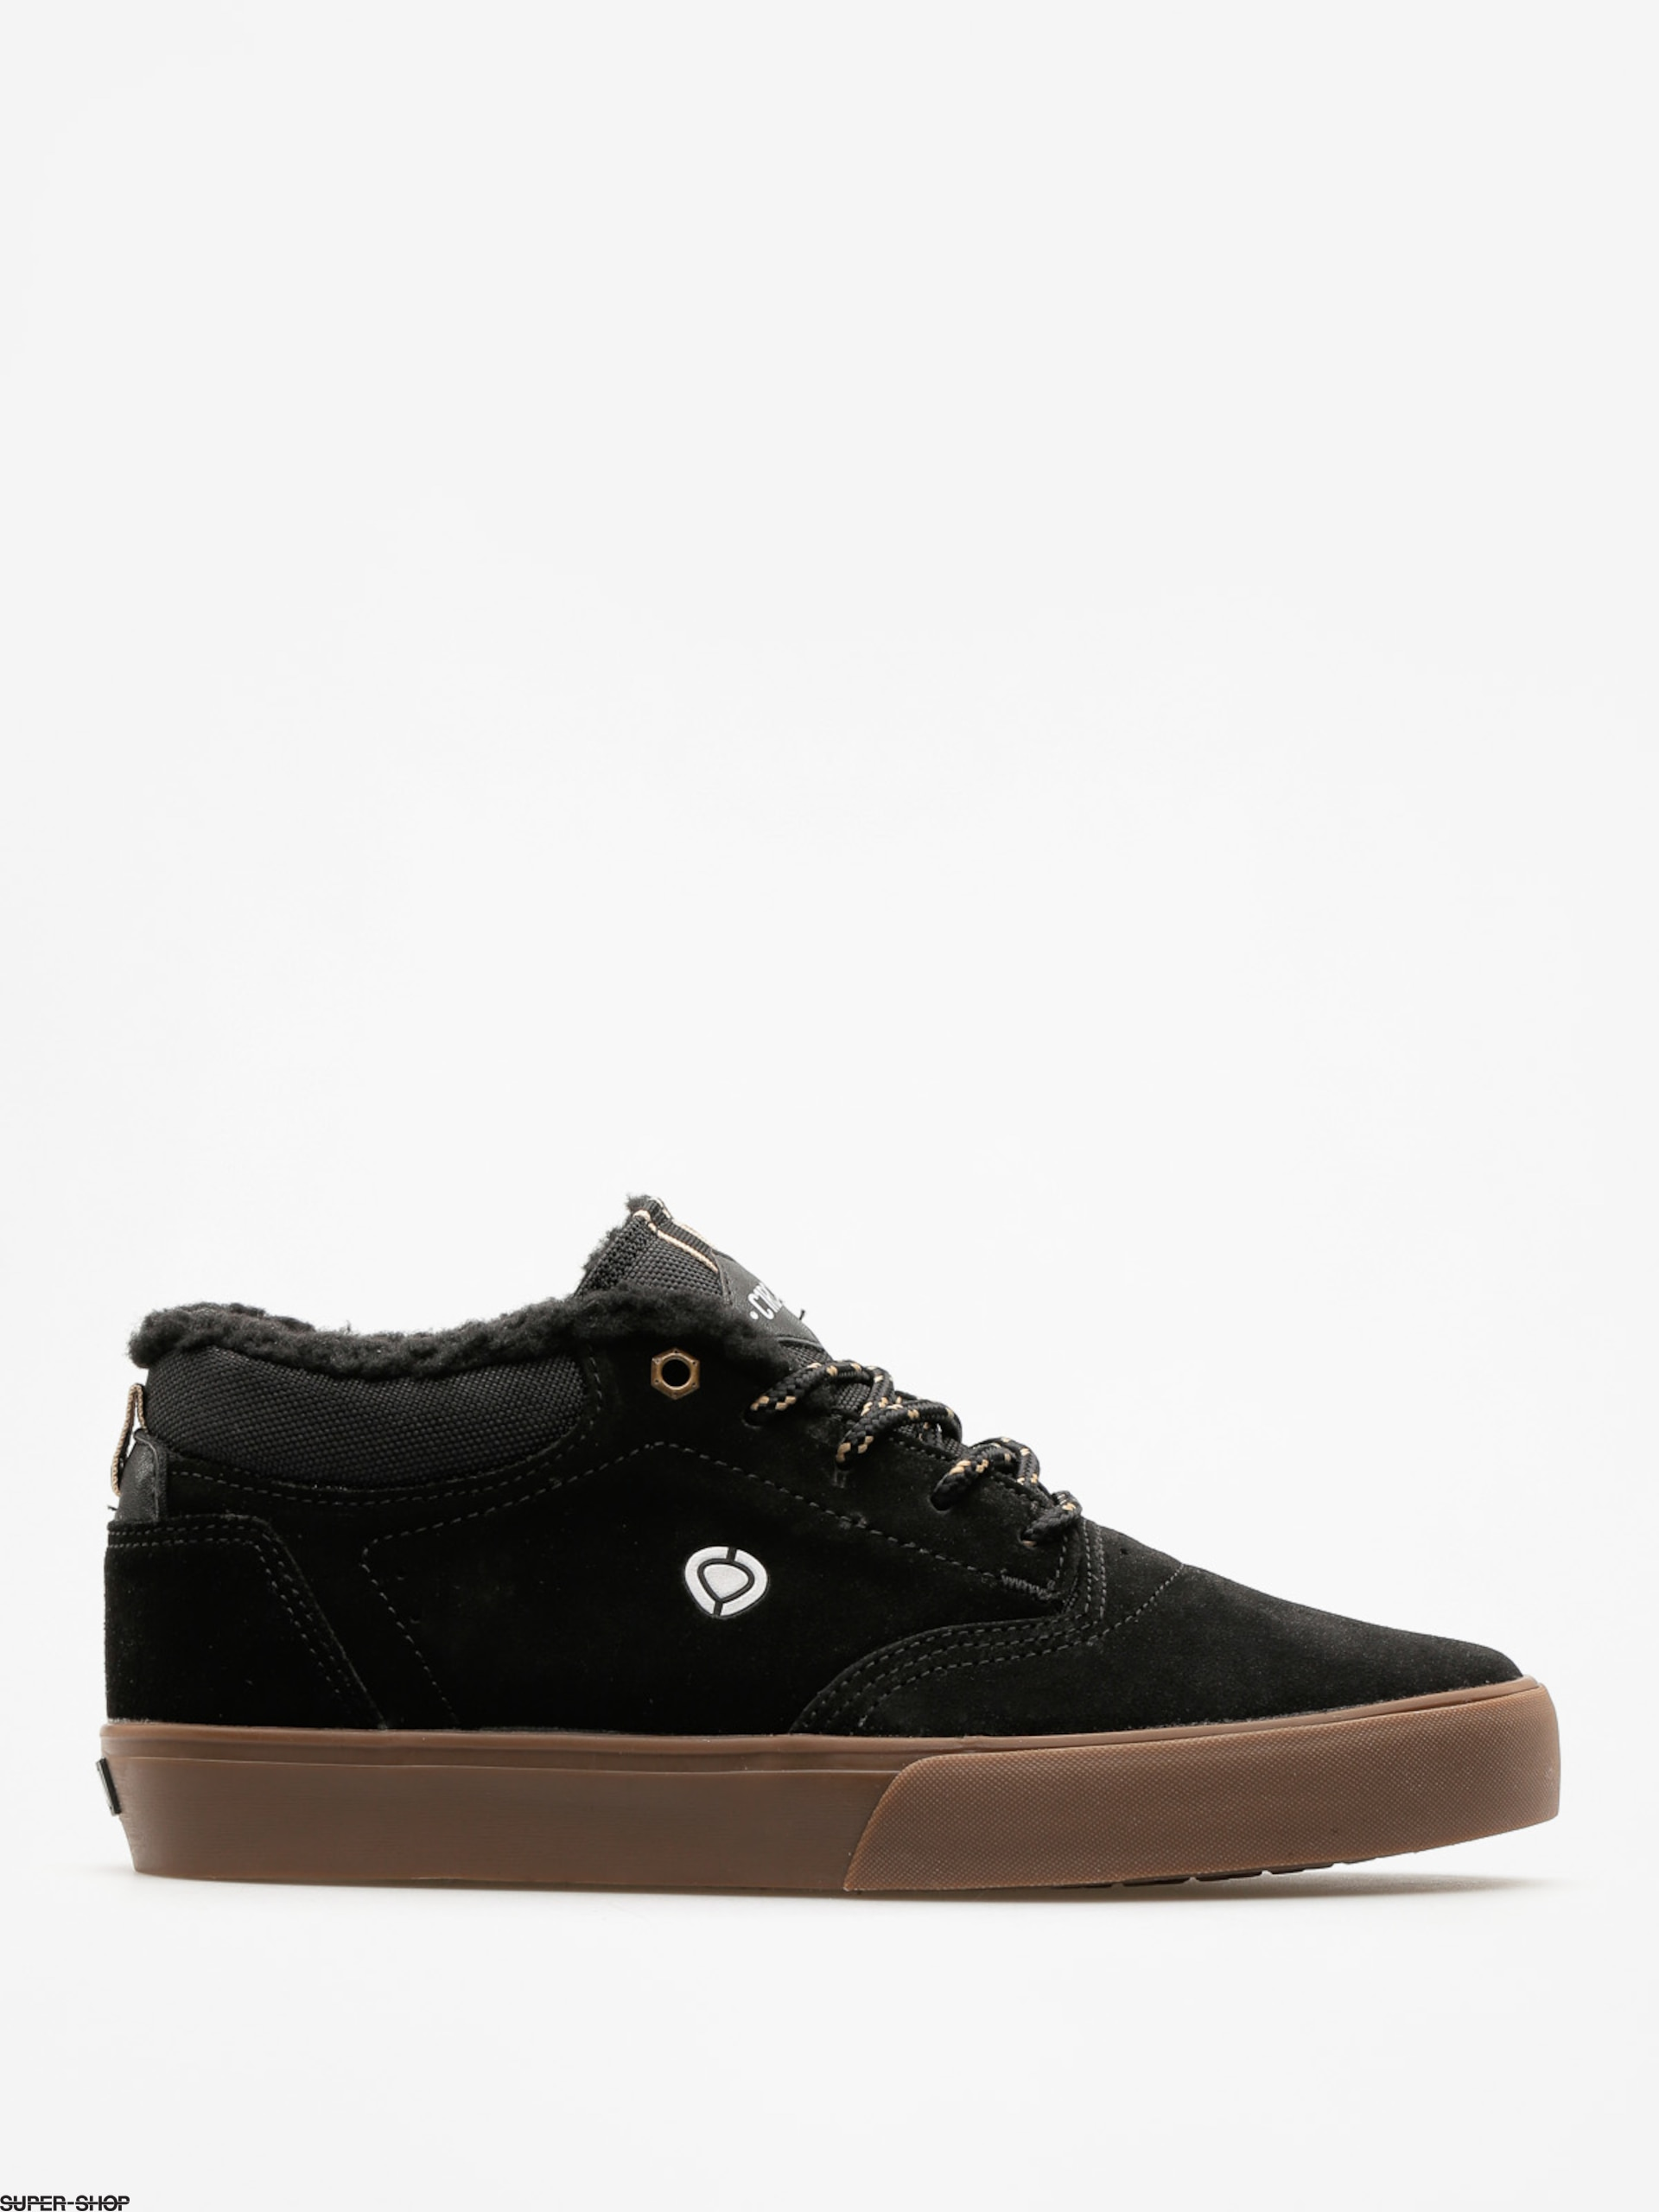 Circa Shoes Lakota Se (black/ gum/sherpa)